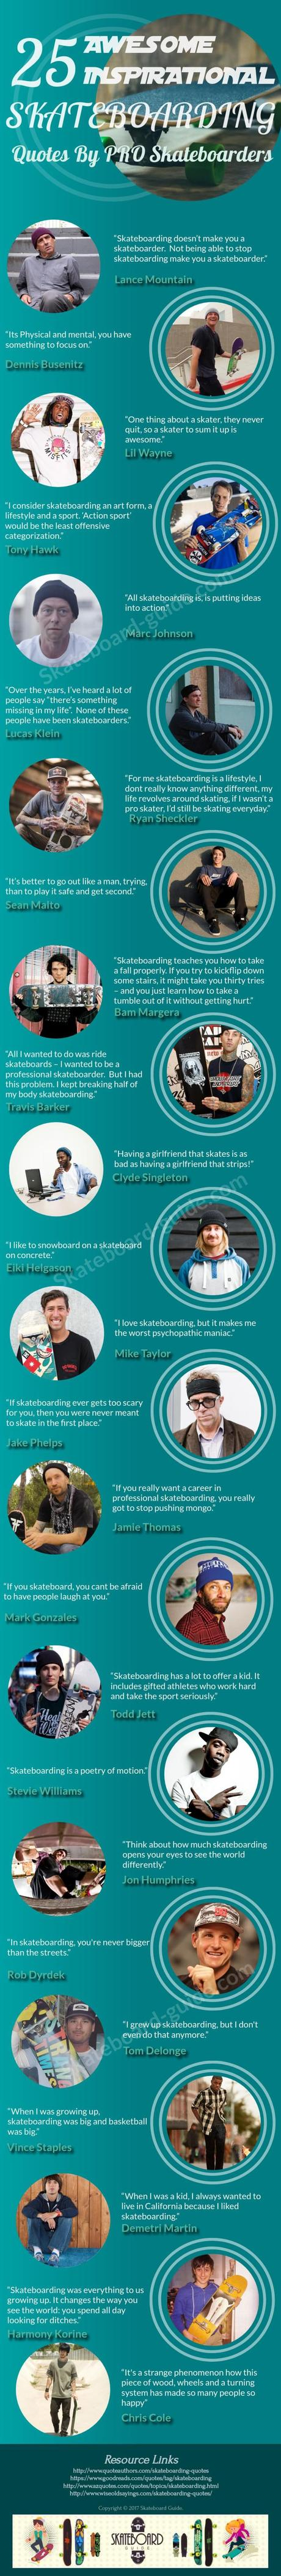 25 Awesome Inspirational Skateboard Quotes By Pro Skateboarders [Infographic]